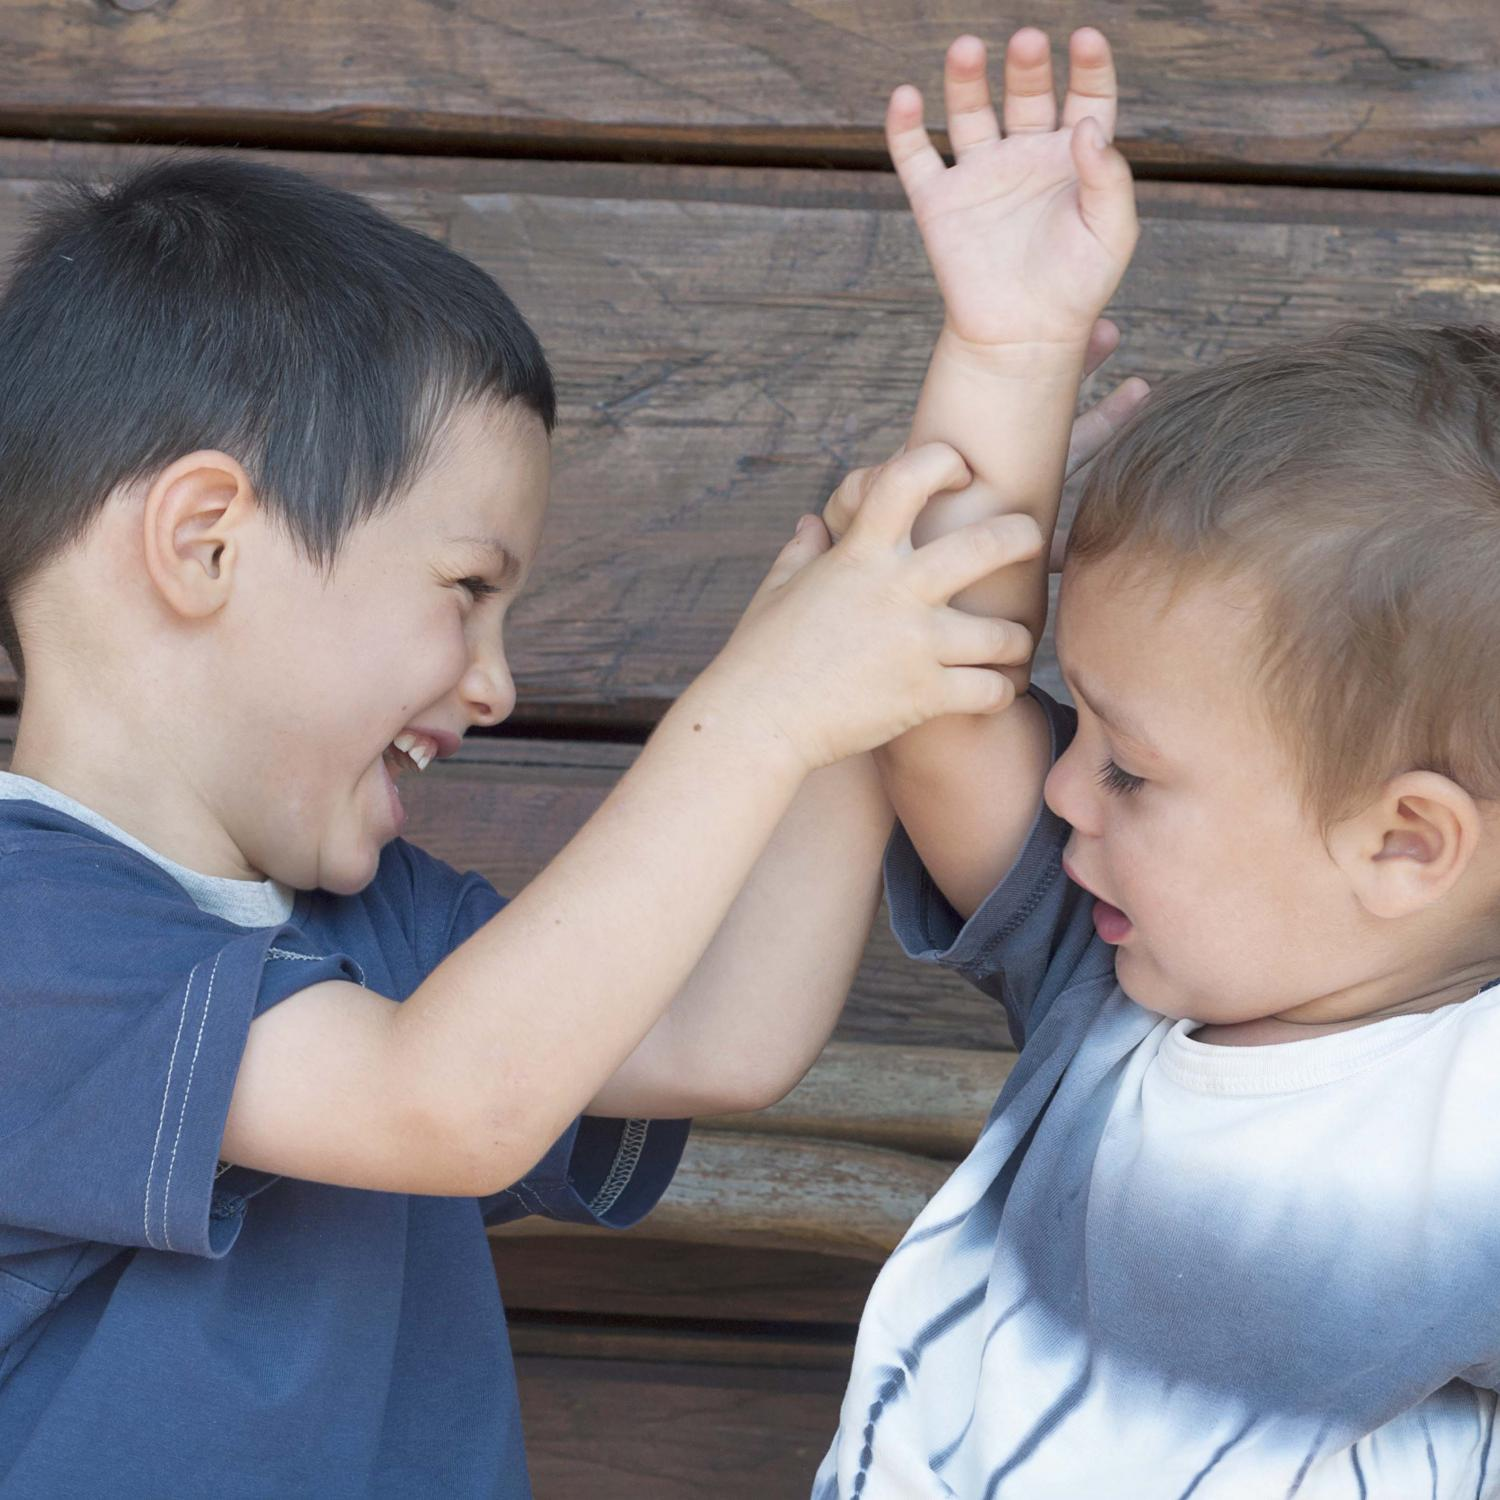 Aggressive child: the correct approach to education